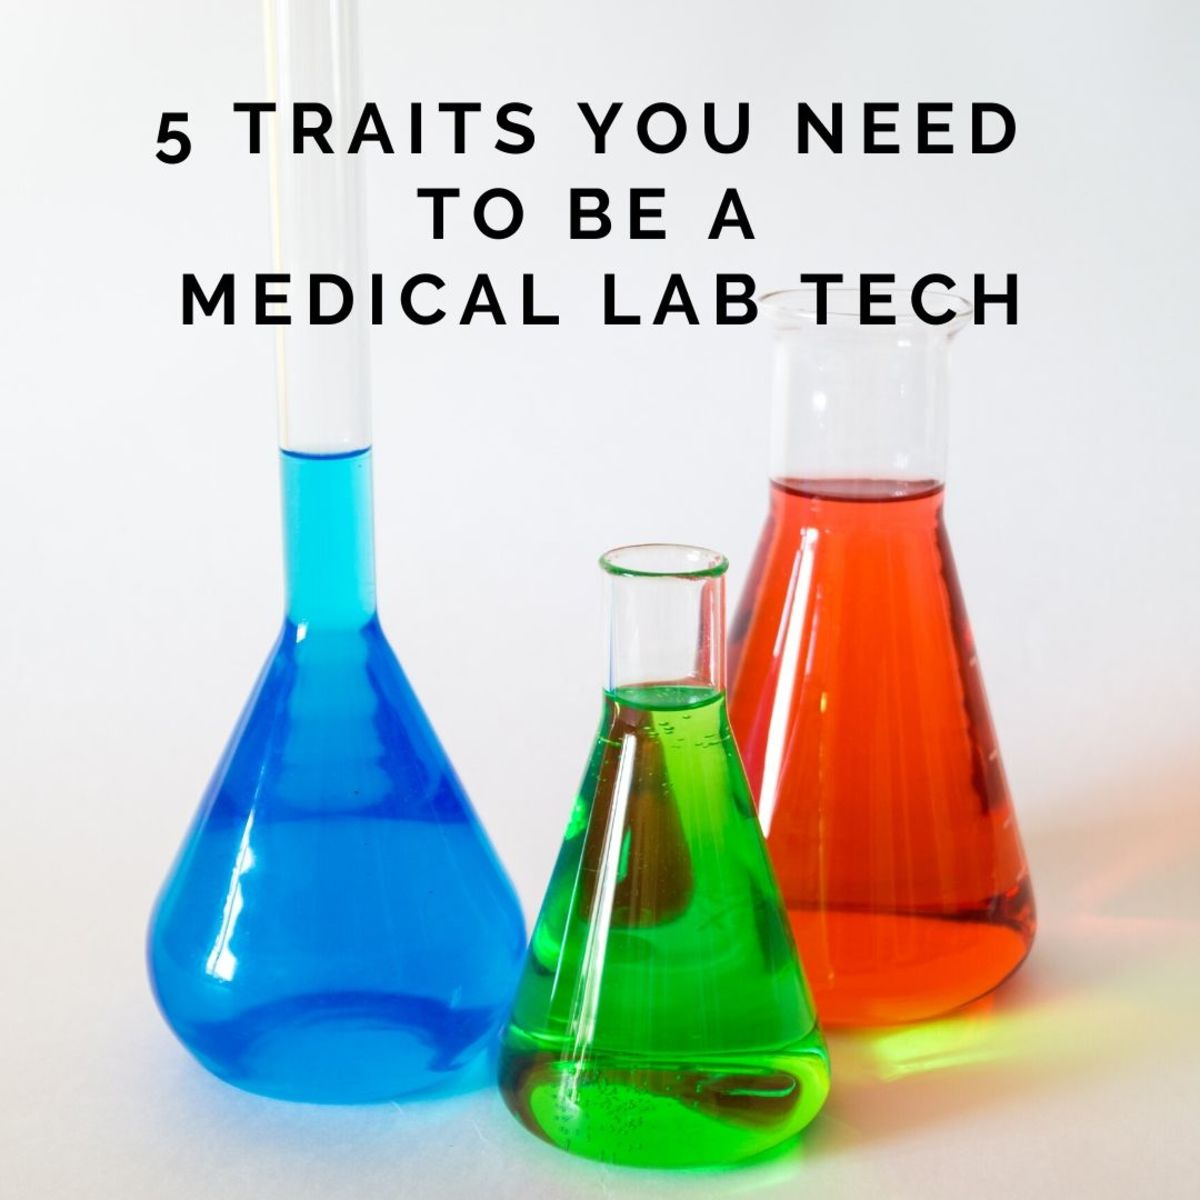 What should you know before pursuing a career as a medical laboratory technologist?